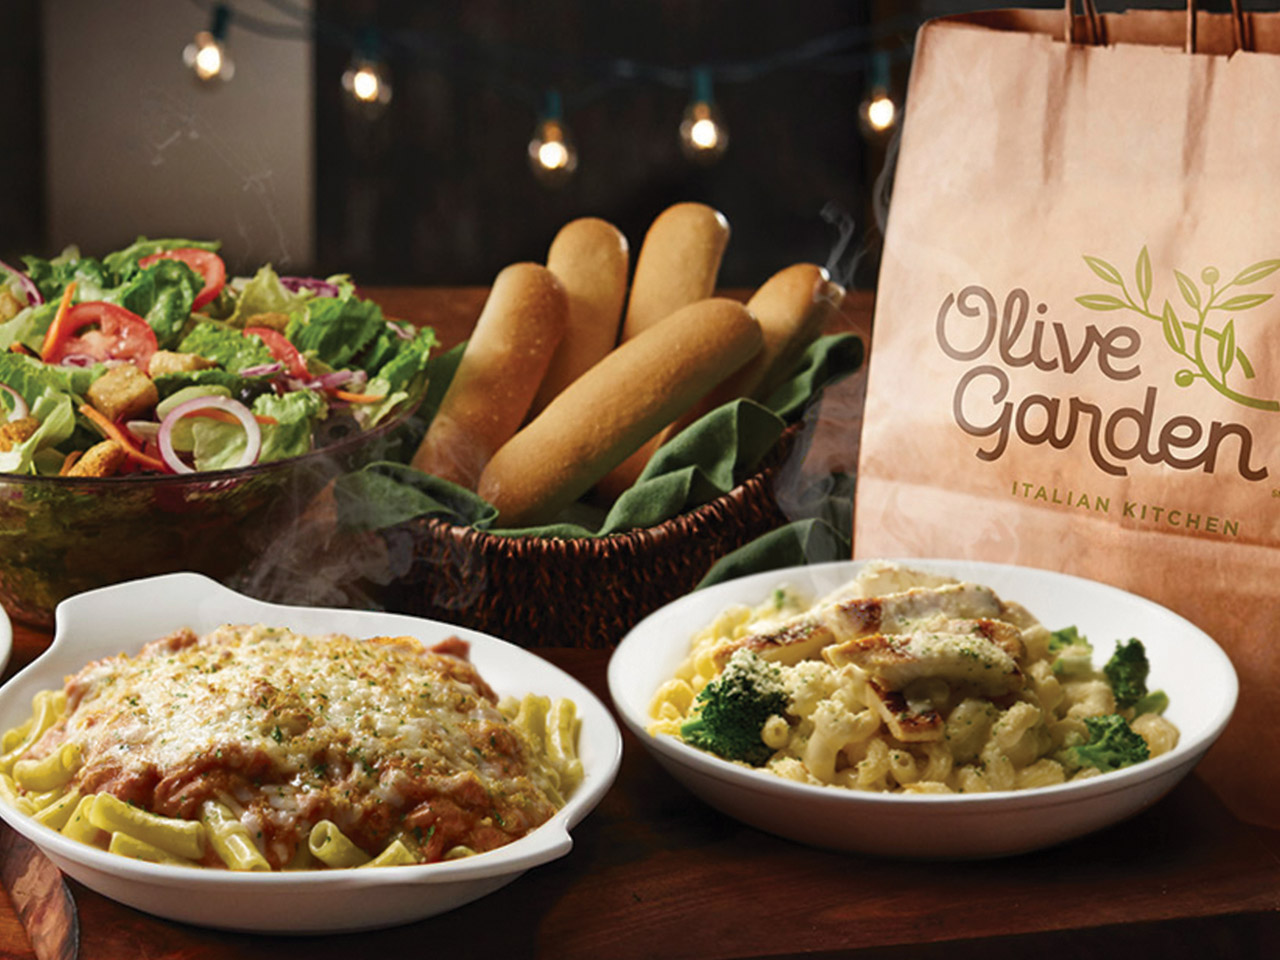 Olive Garden Italian Restaurant 13910 E Us Highway 40, Independence ...